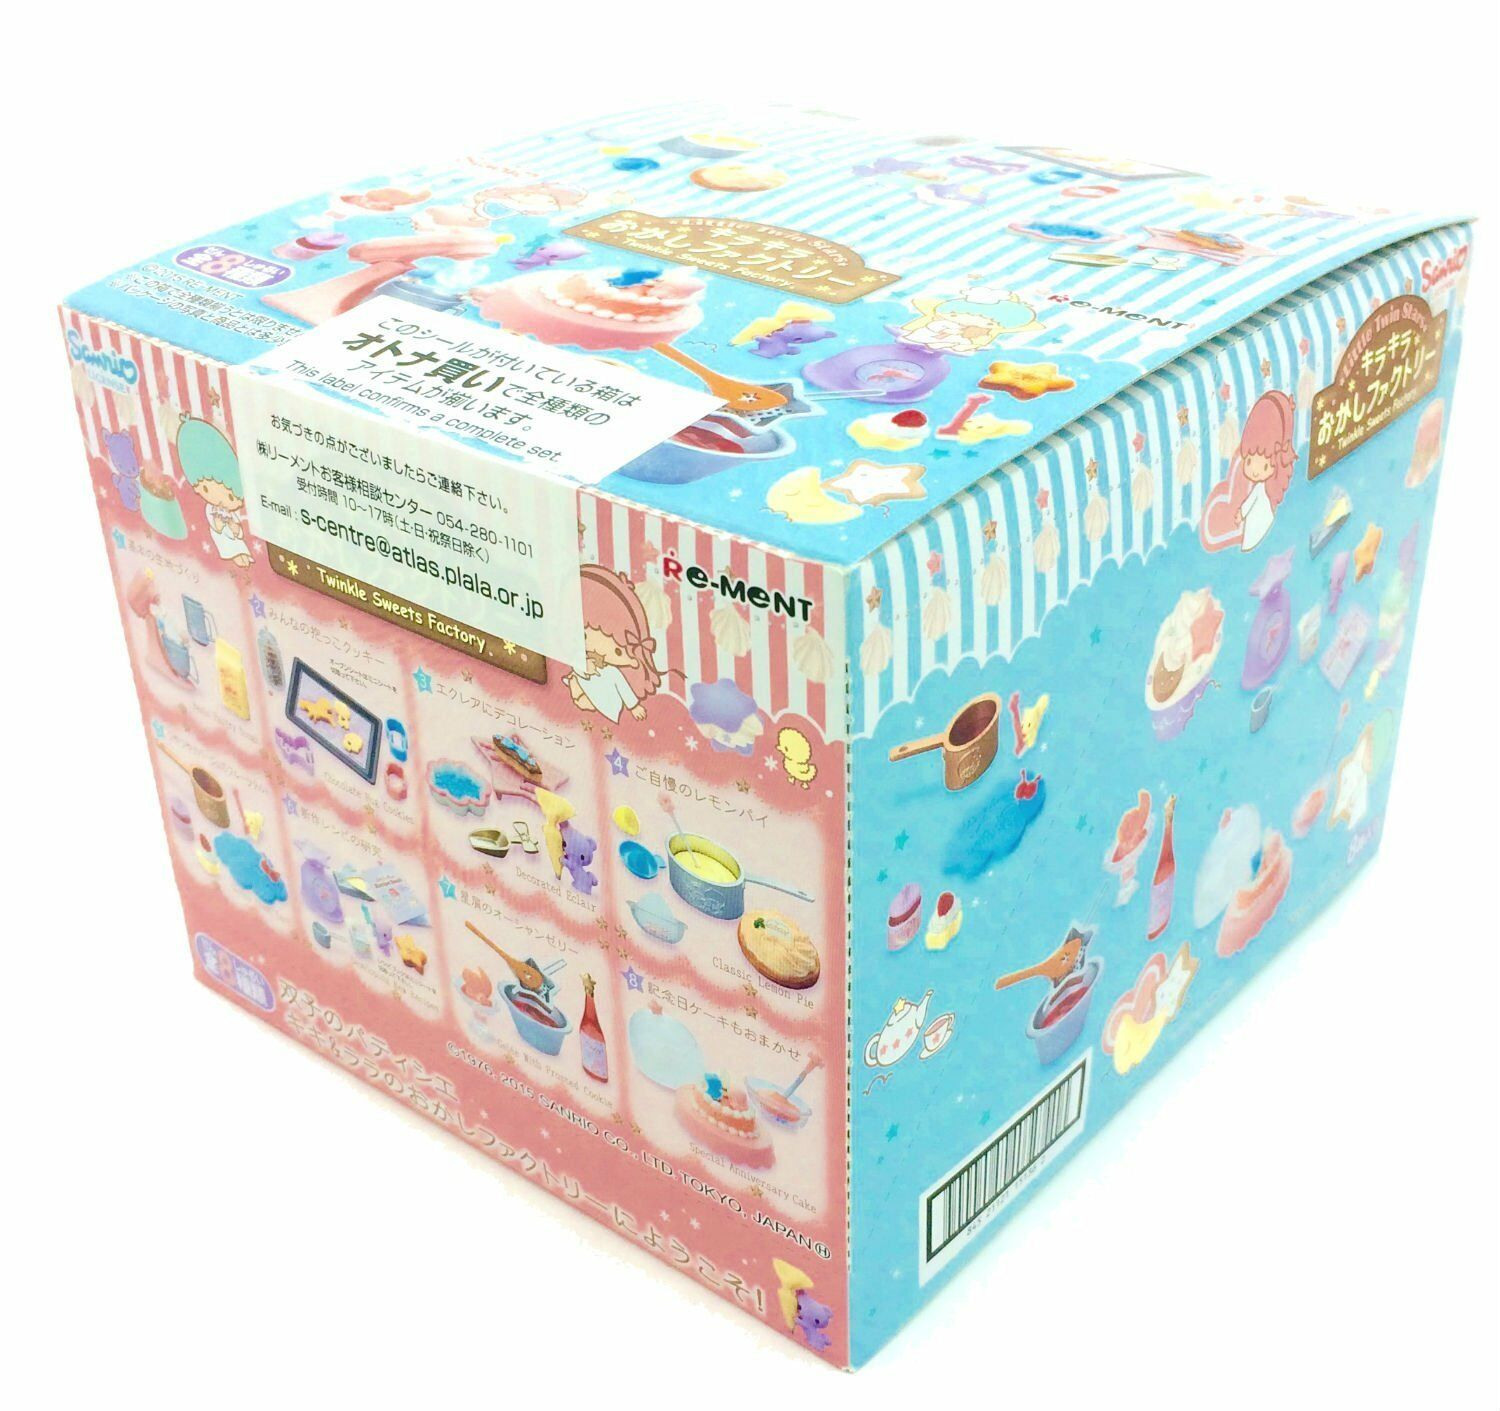 New Little Twin Stars Twinkle Sweets Factory Complete Set Re-Ment Japan